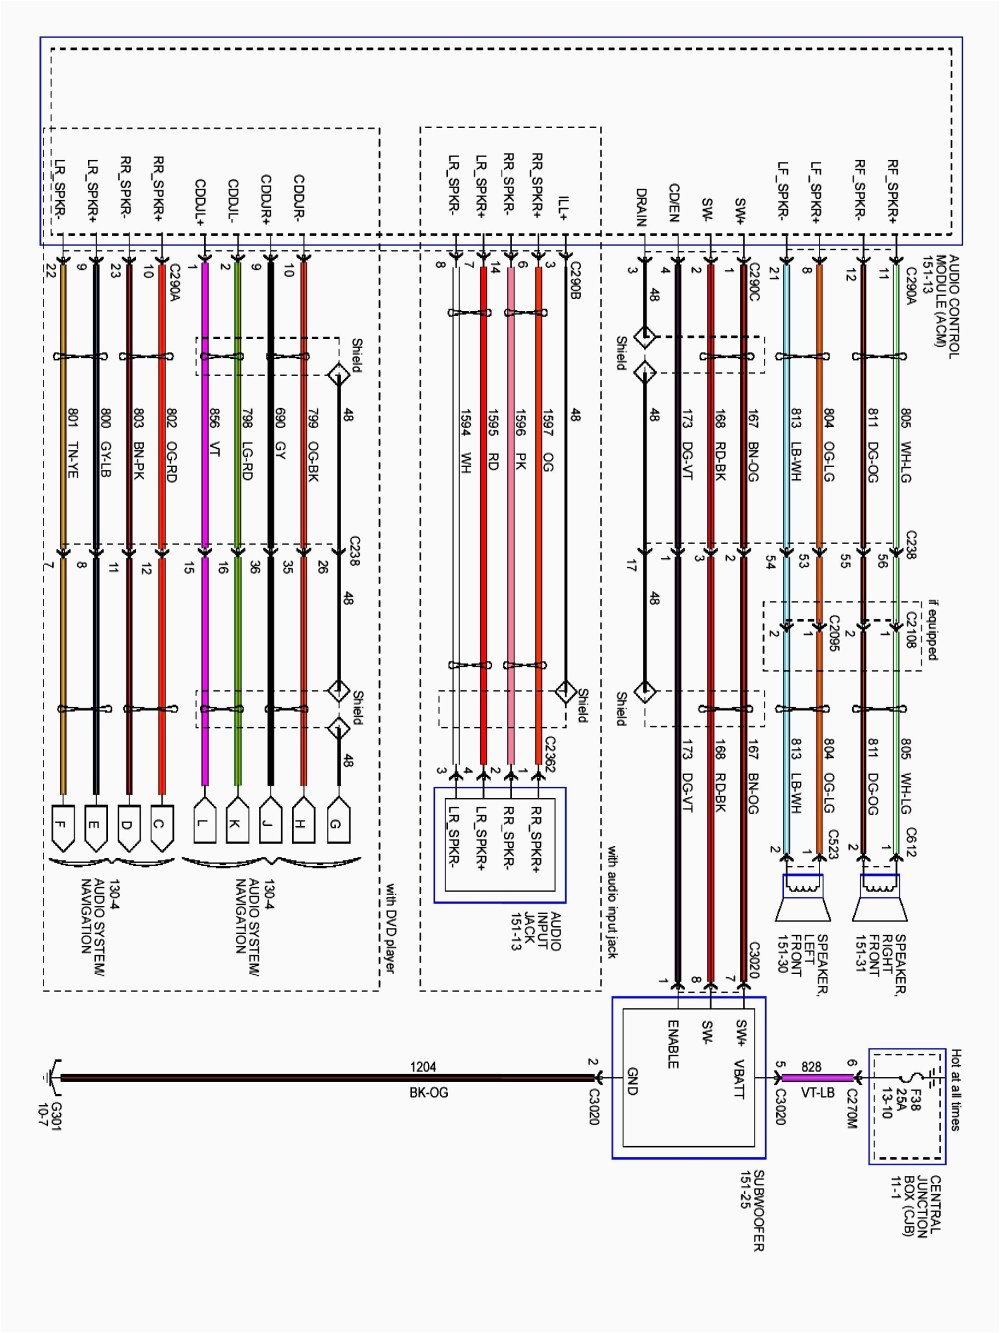 medium resolution of 2003 ford f 250 trailer wiring harness diagram wiring diagrams trailer wiring harness 2003 ford f250